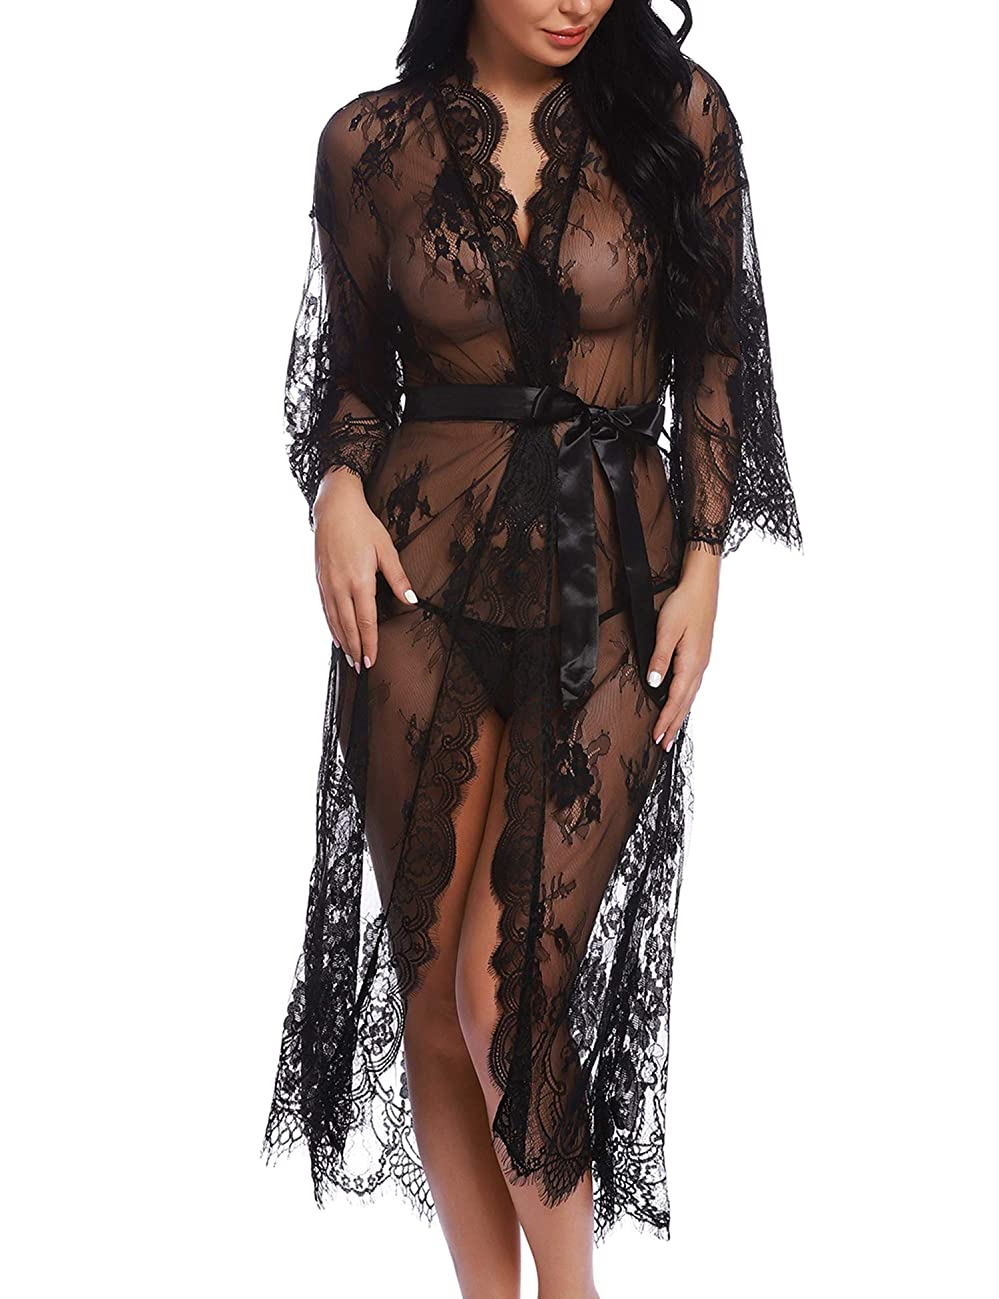 RSLOVE Lingerie for Women Sexy Long Lace Kimono Robe Eyelash Babydoll Sheer Cover Up Dress with Satin Belt